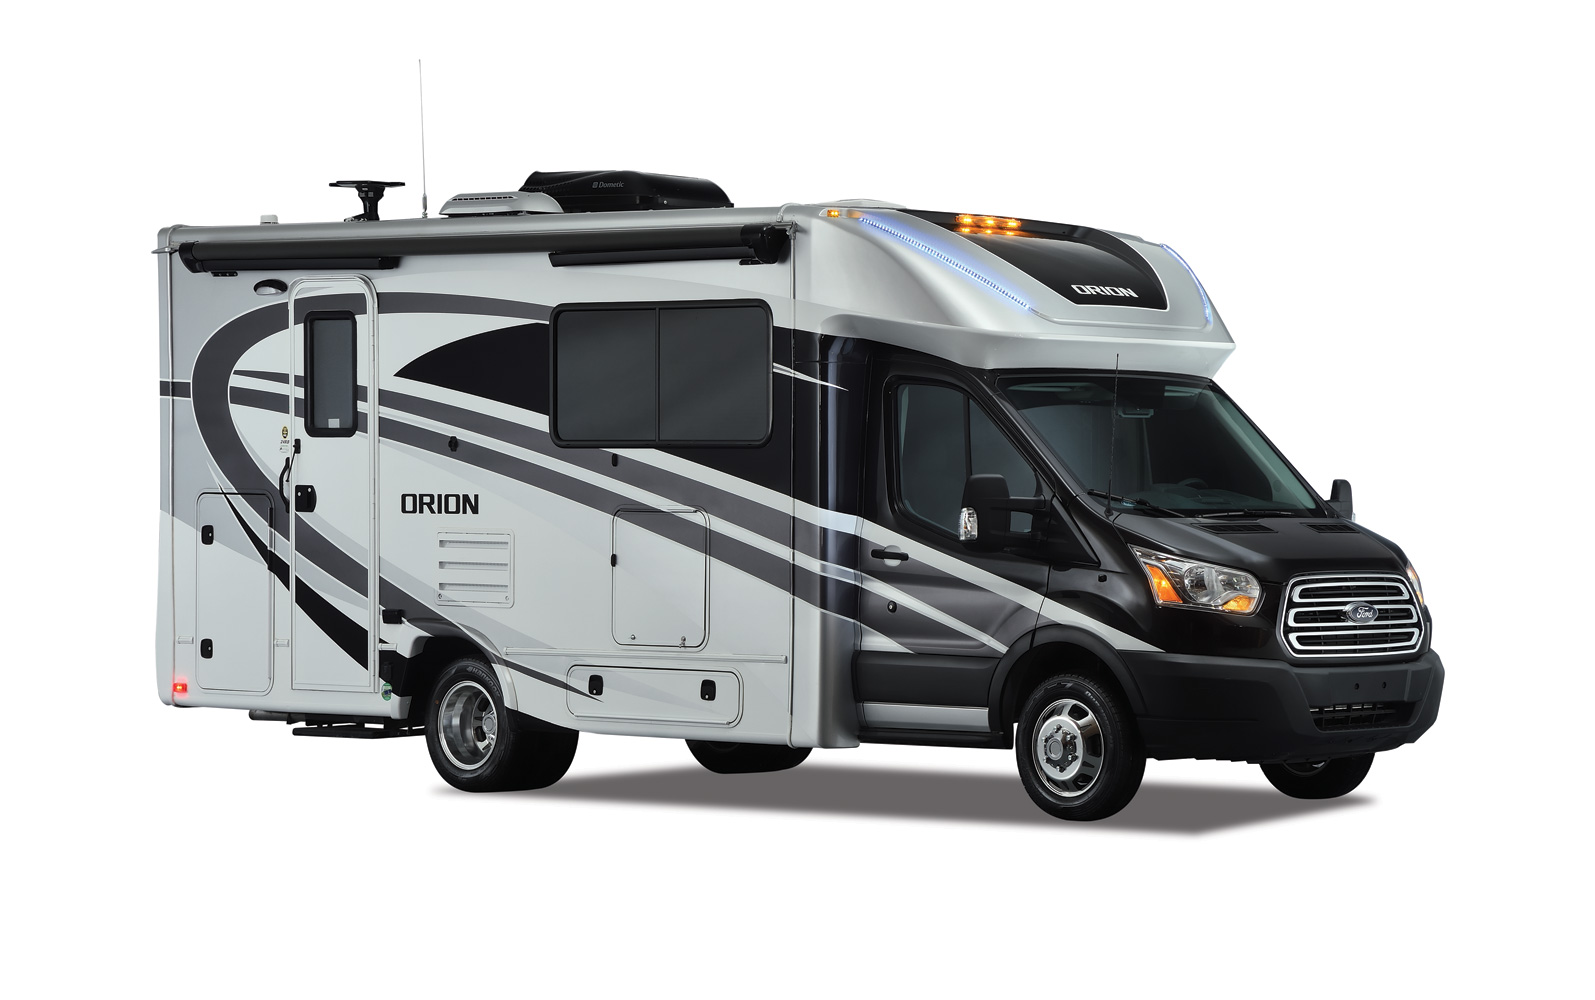 Orion Class C Motorhomes by Coachmen RV